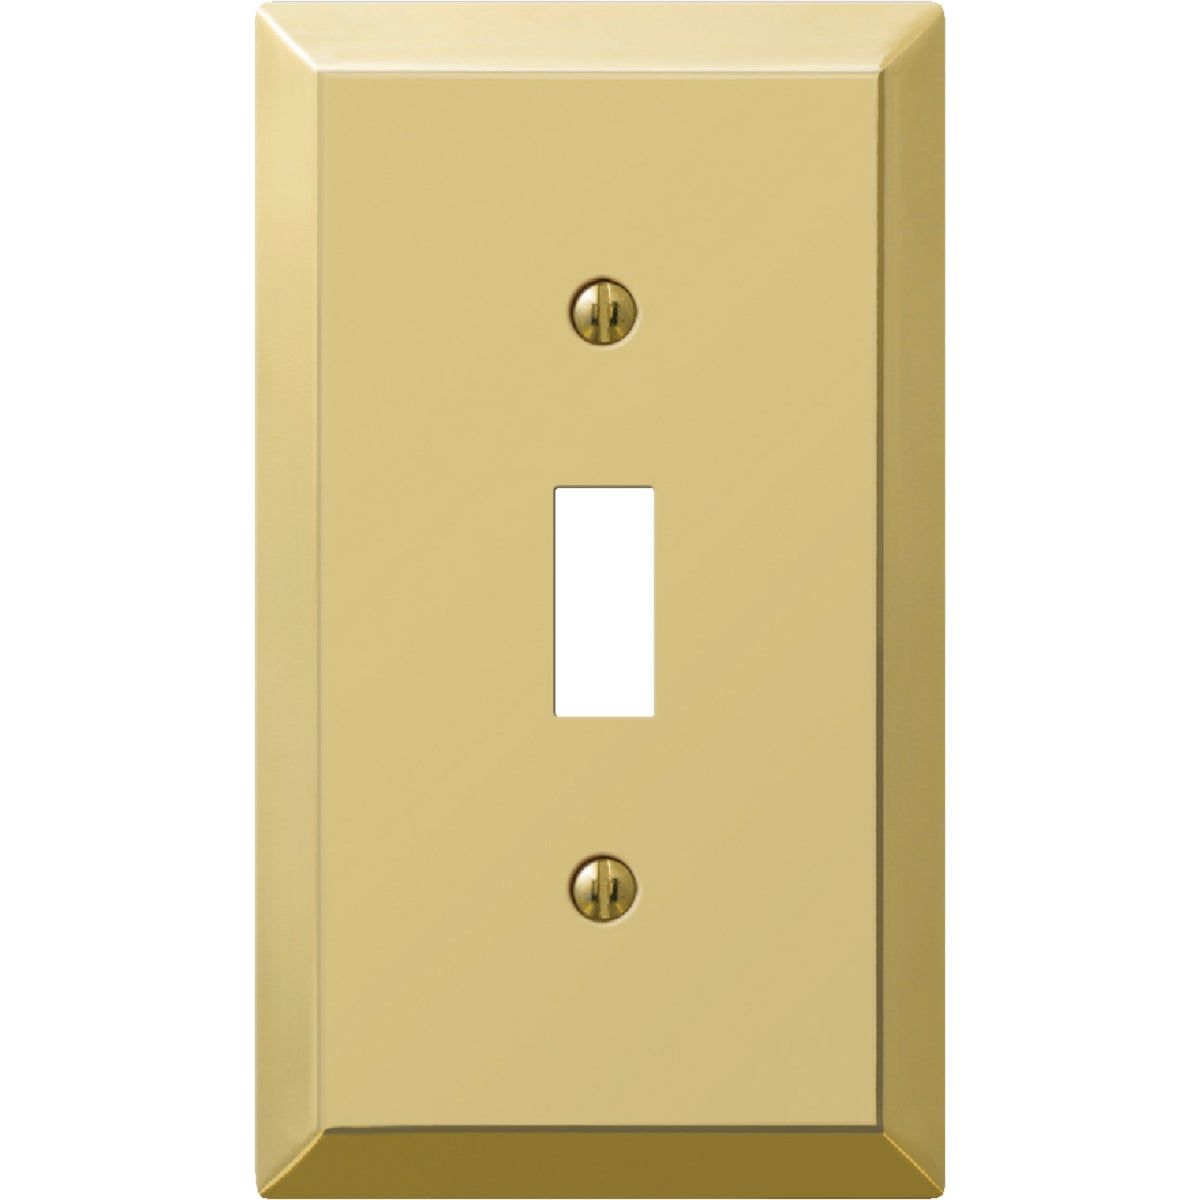 BRS 1-TOGGLE WALL PLATE - 9BS101 by Jackson Deerfield Mf